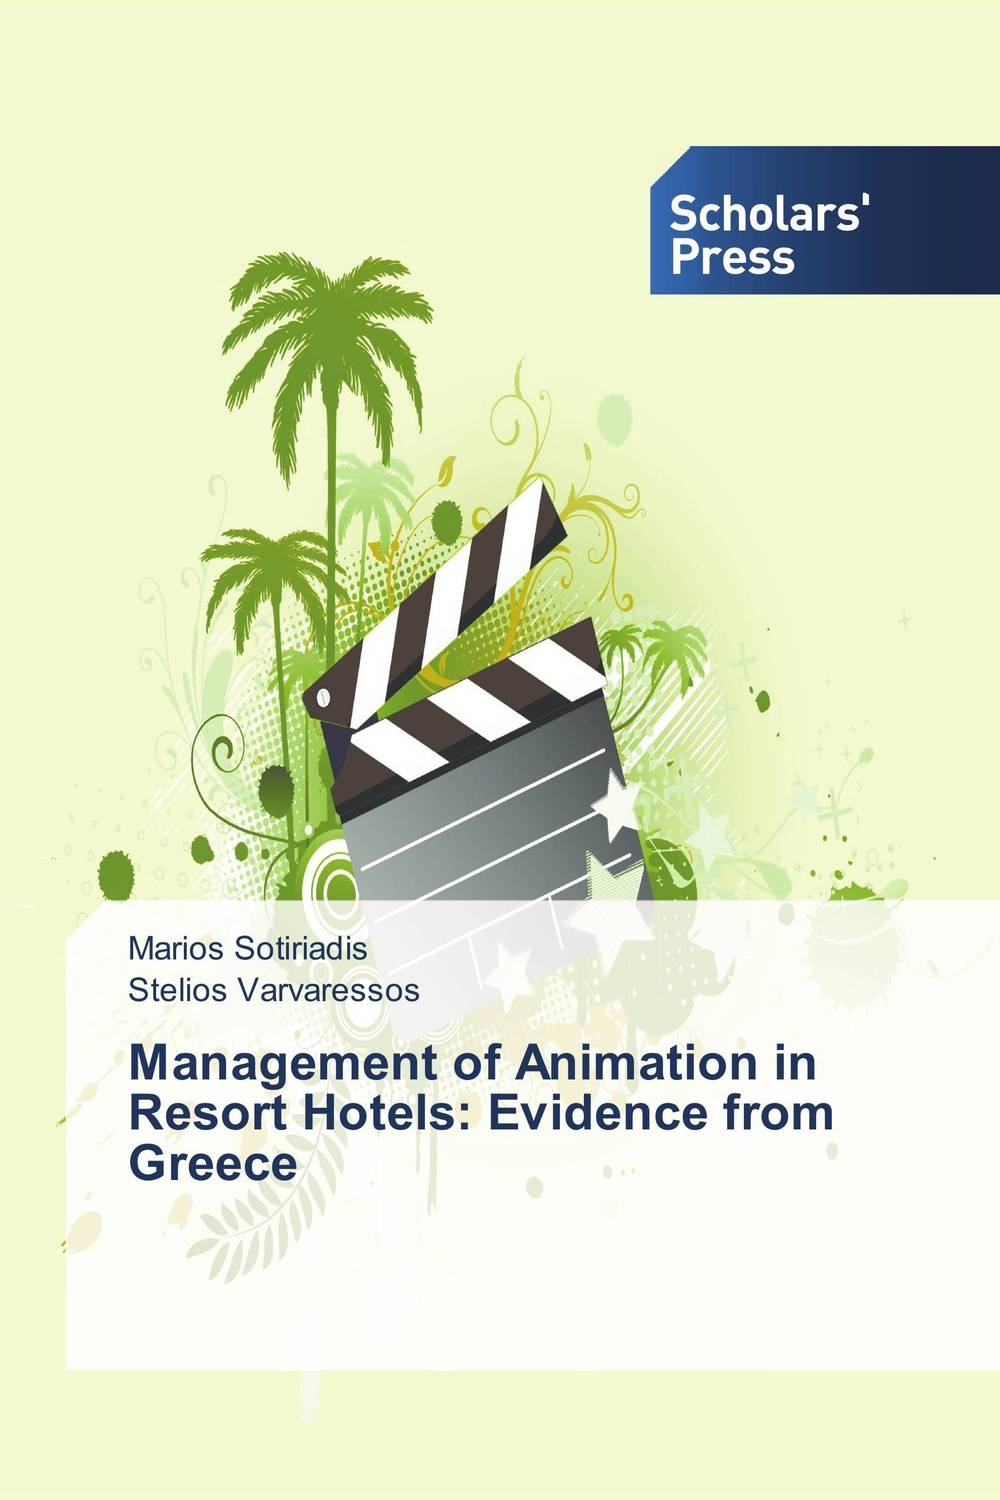 Management of Animation in Resort Hotels: Evidence from Greece